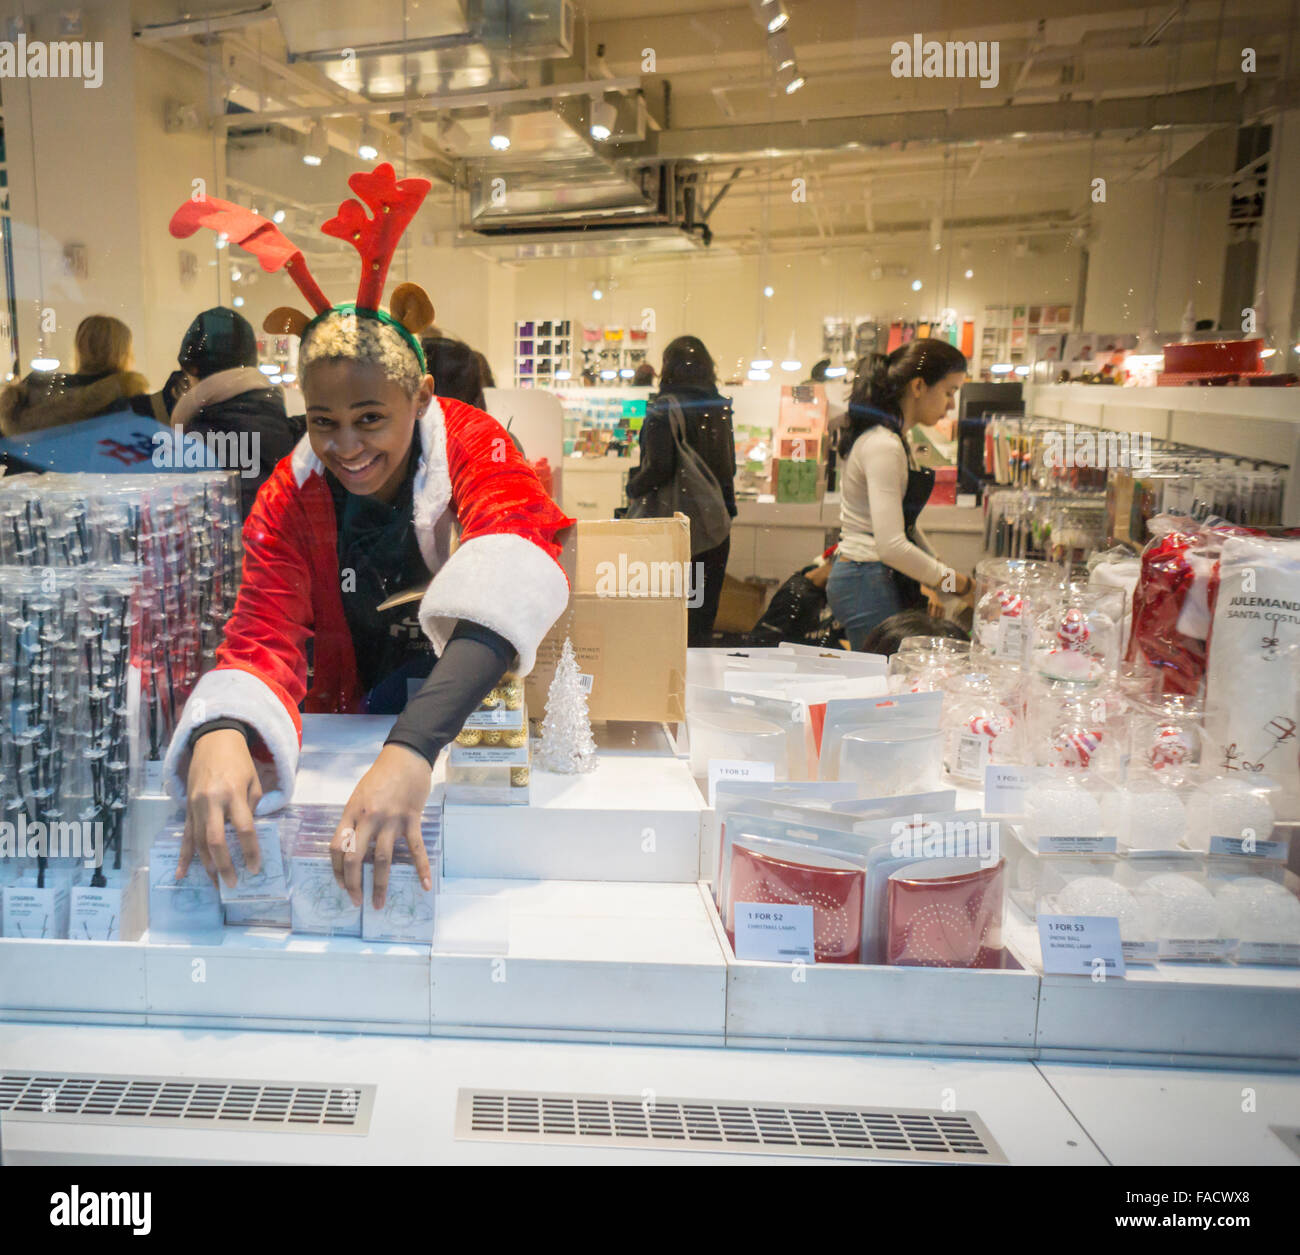 A worker dressed as a reindeer adjusts stock in the window of a store in New York on Wednesday, December 23, 2015. - Stock Image